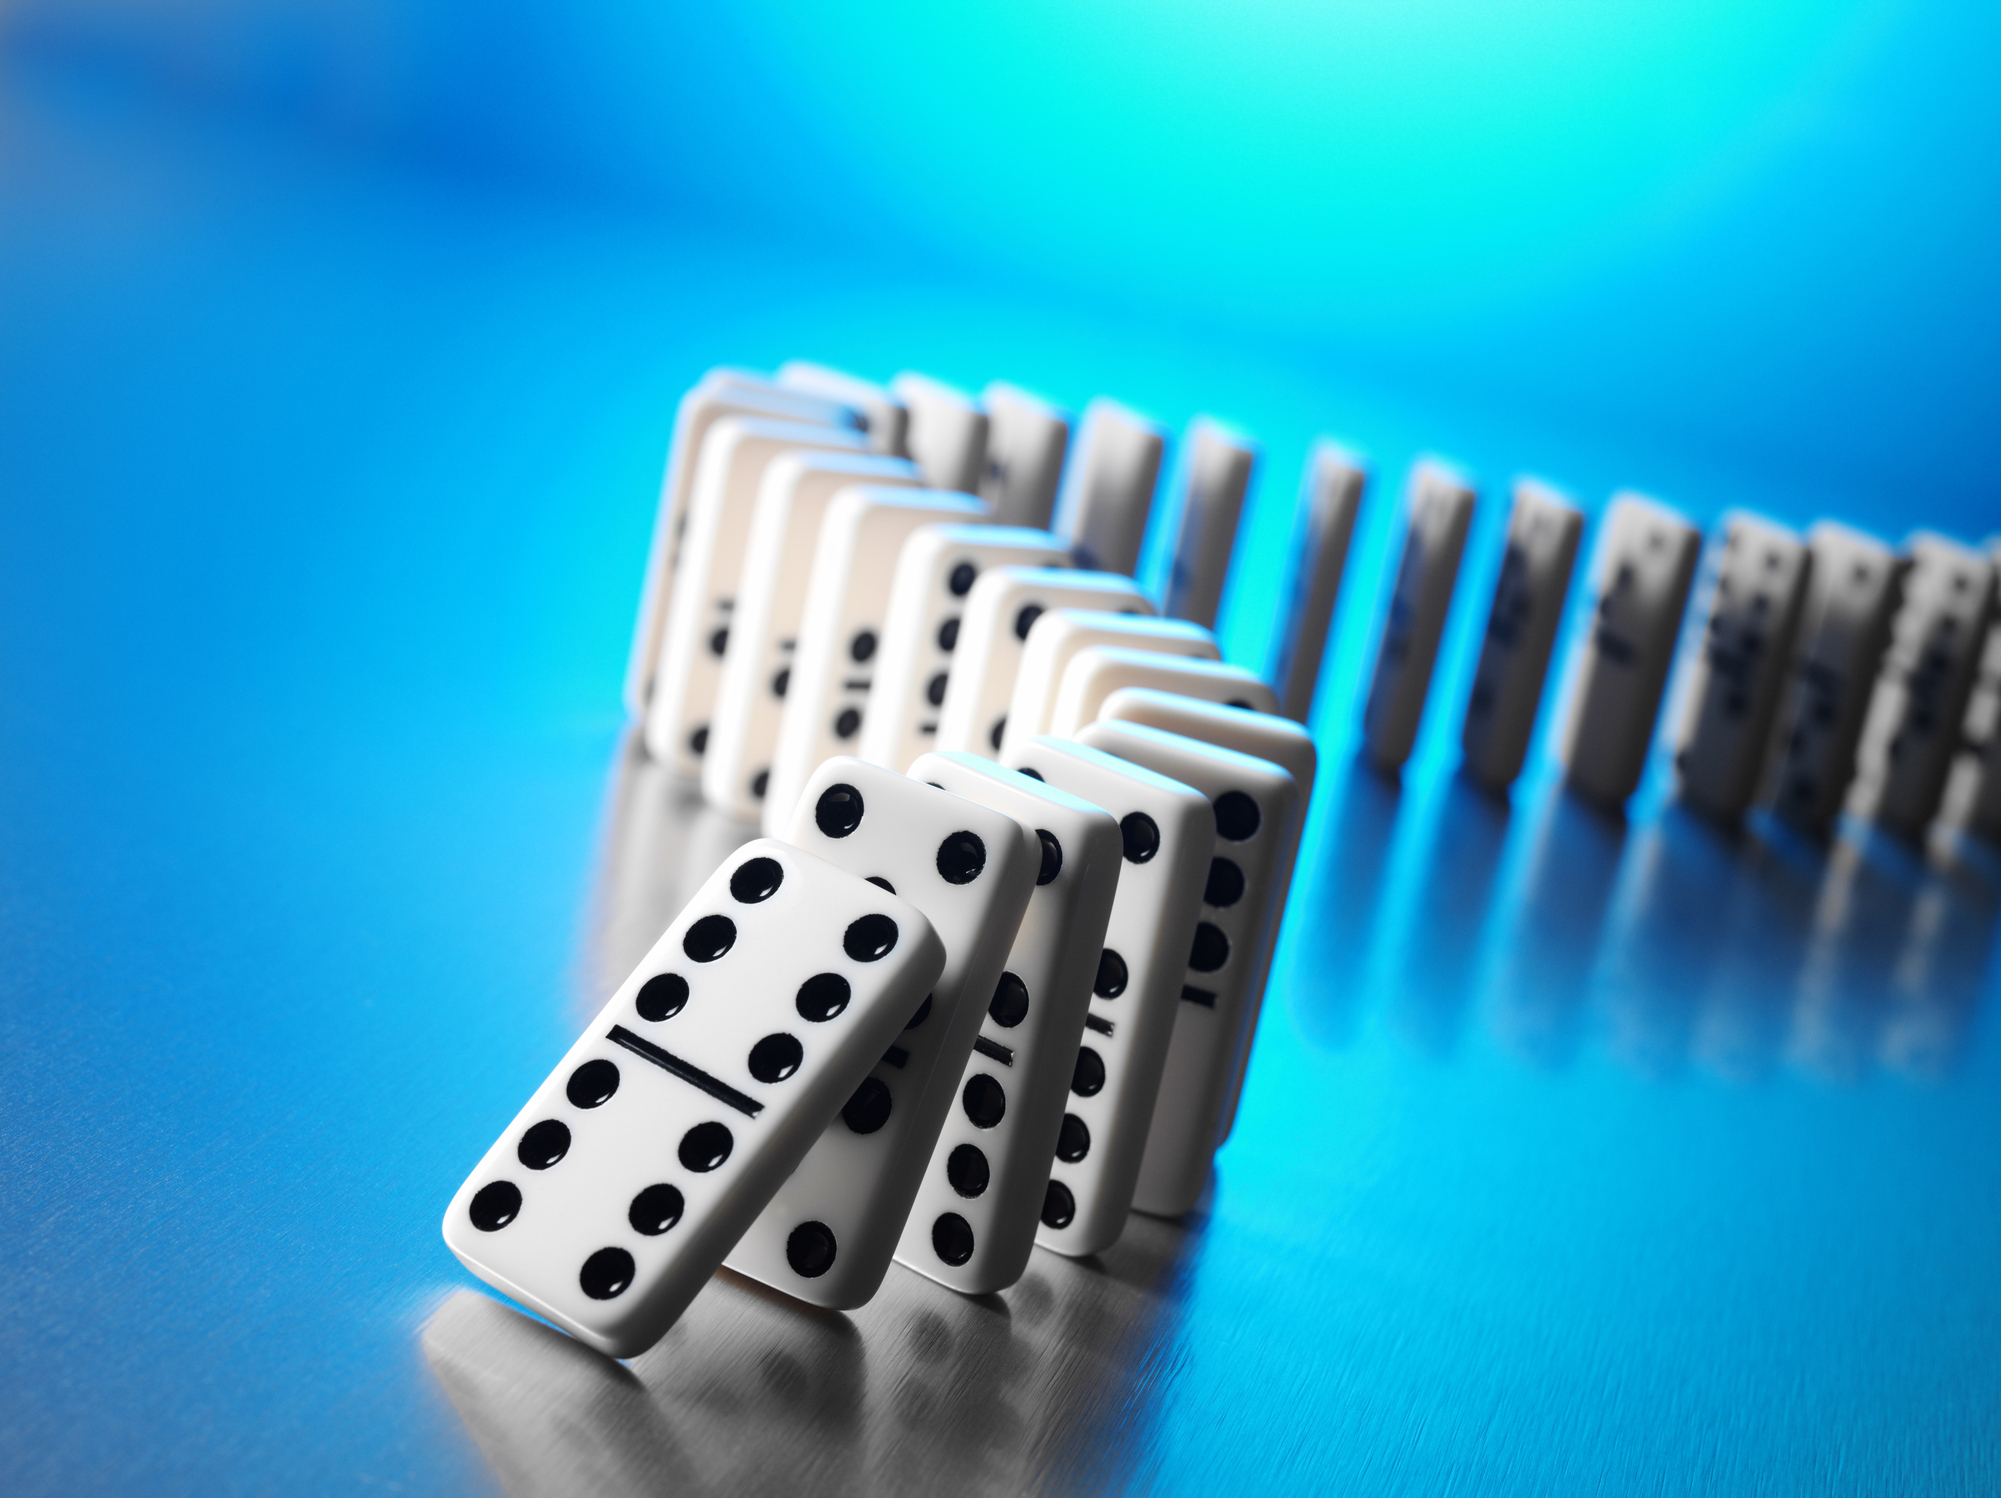 Domino effect on a stainless steel background with blue lighting and copy space.Click on the link below to see more of my sport and business images